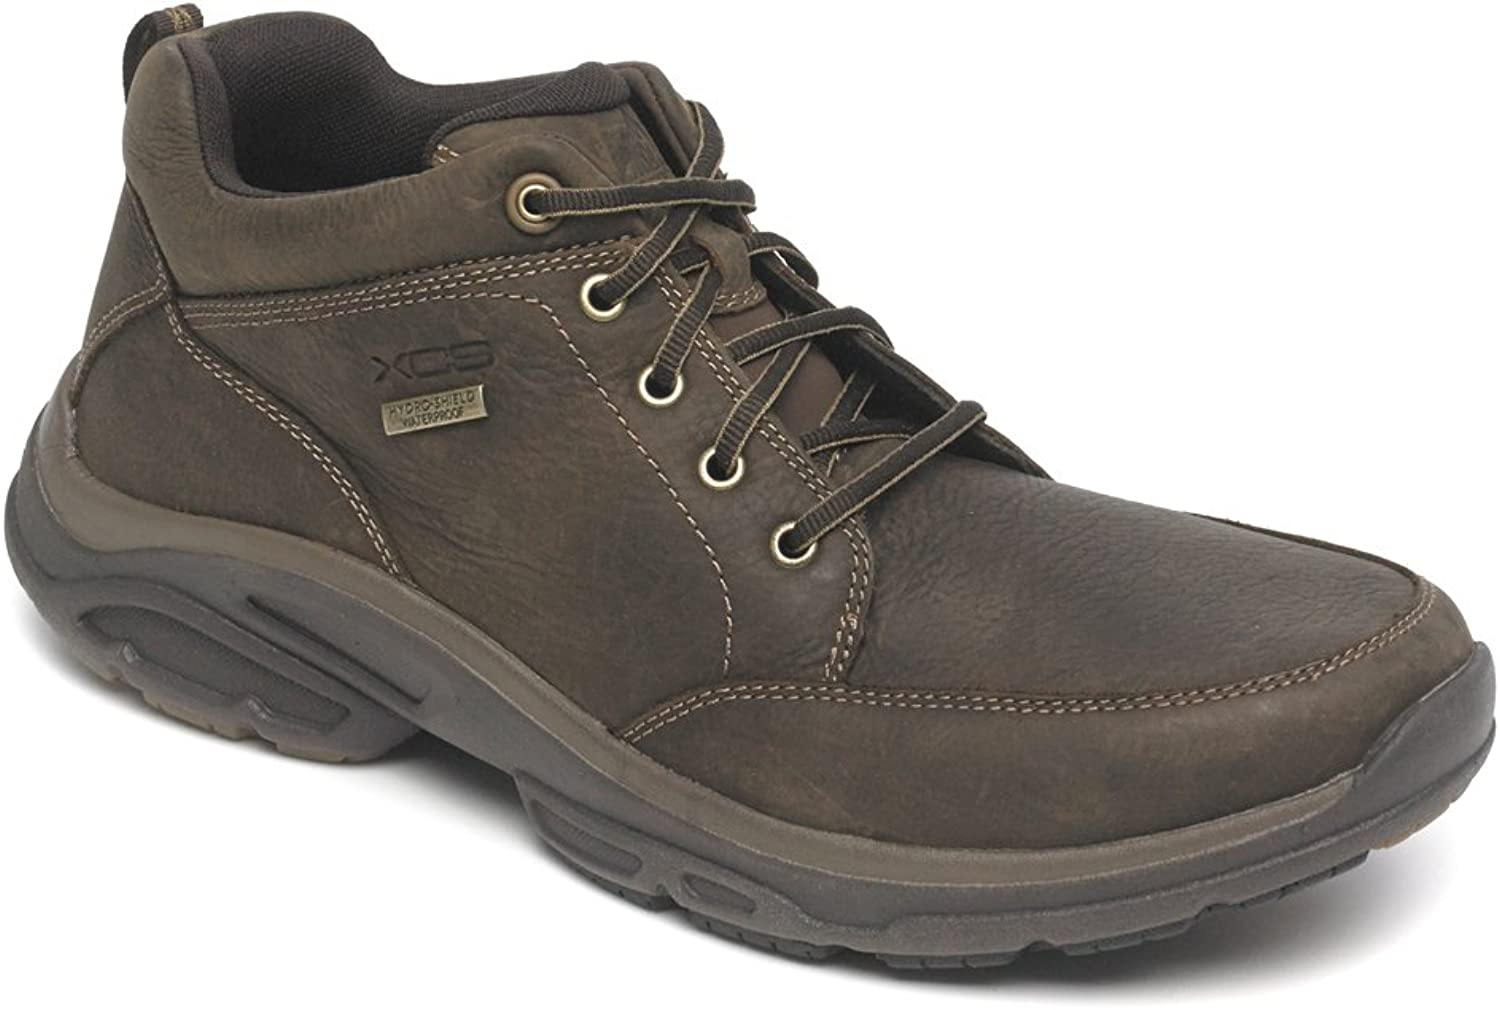 Rockport XCS Mens Weather Adventure Mudguard Boot shoes, Cafe, US 7